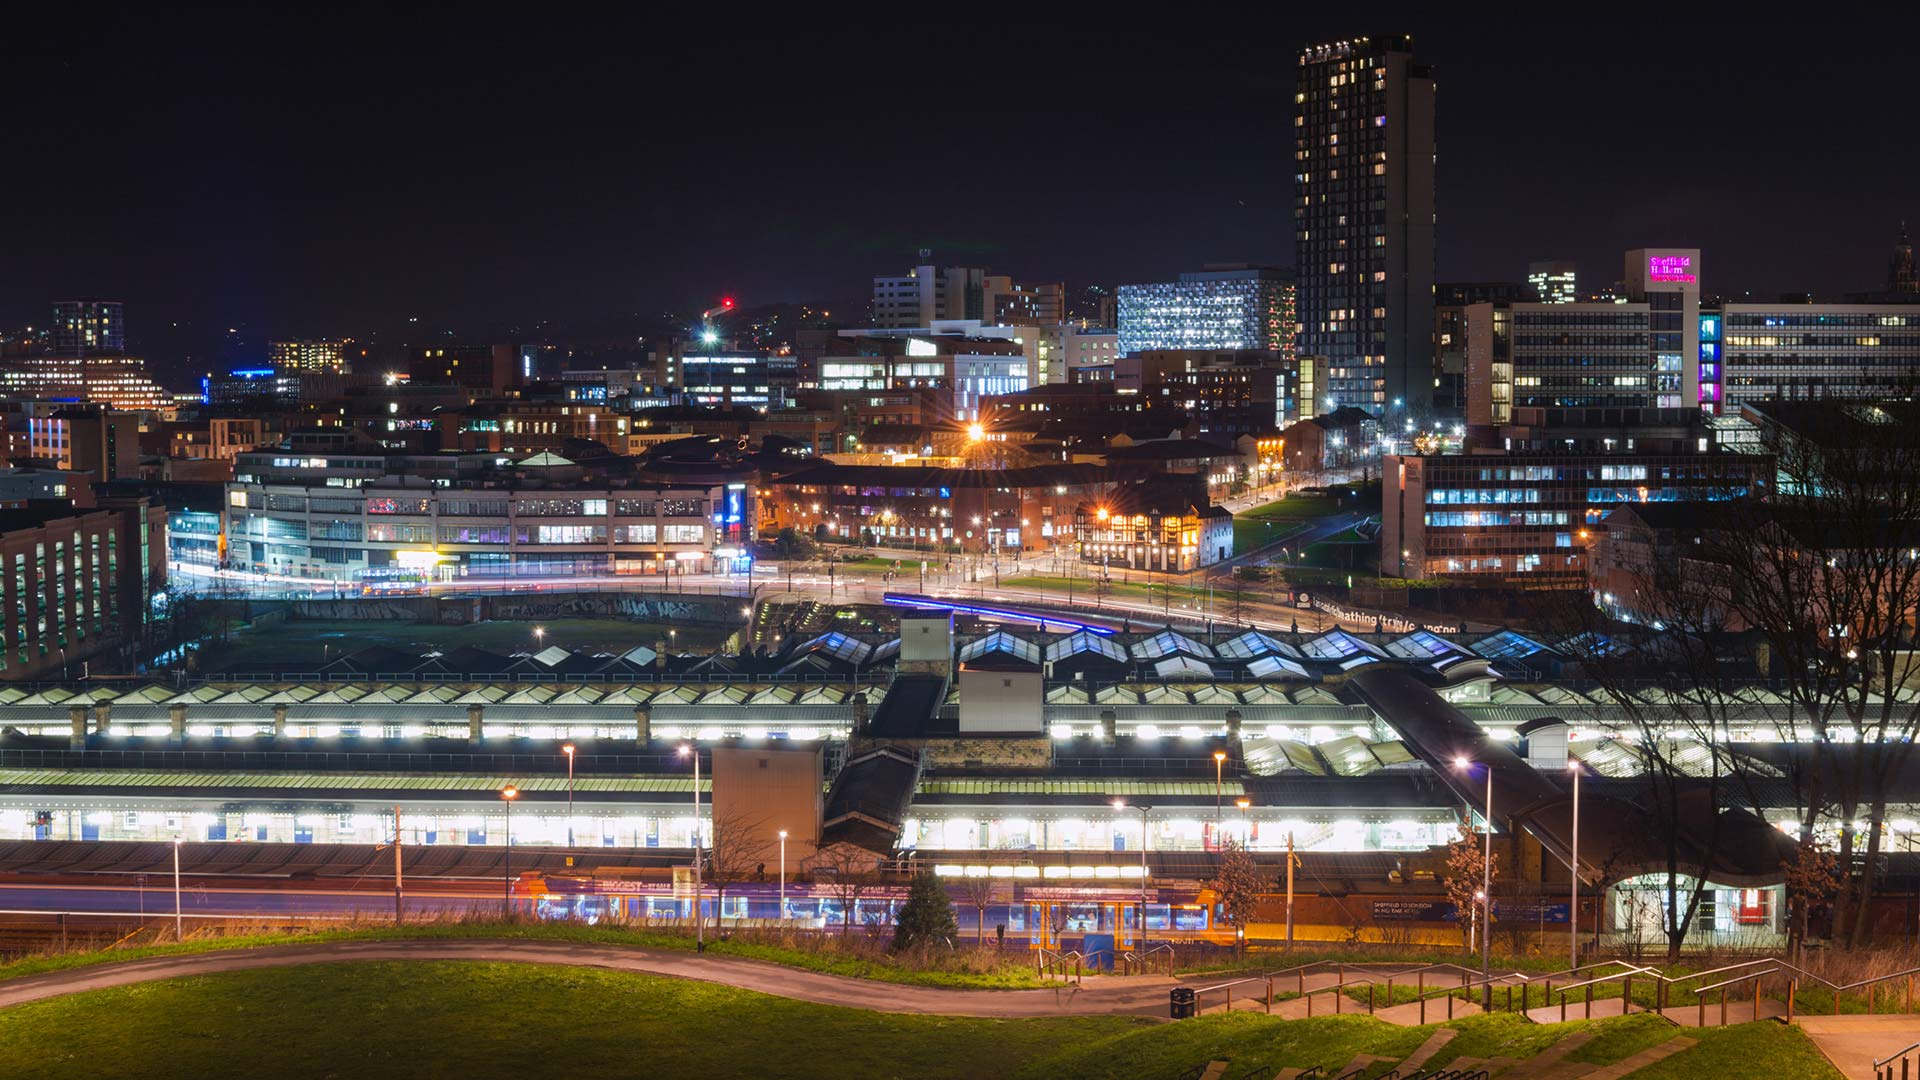 Panorama to illustrate dating in sheffield